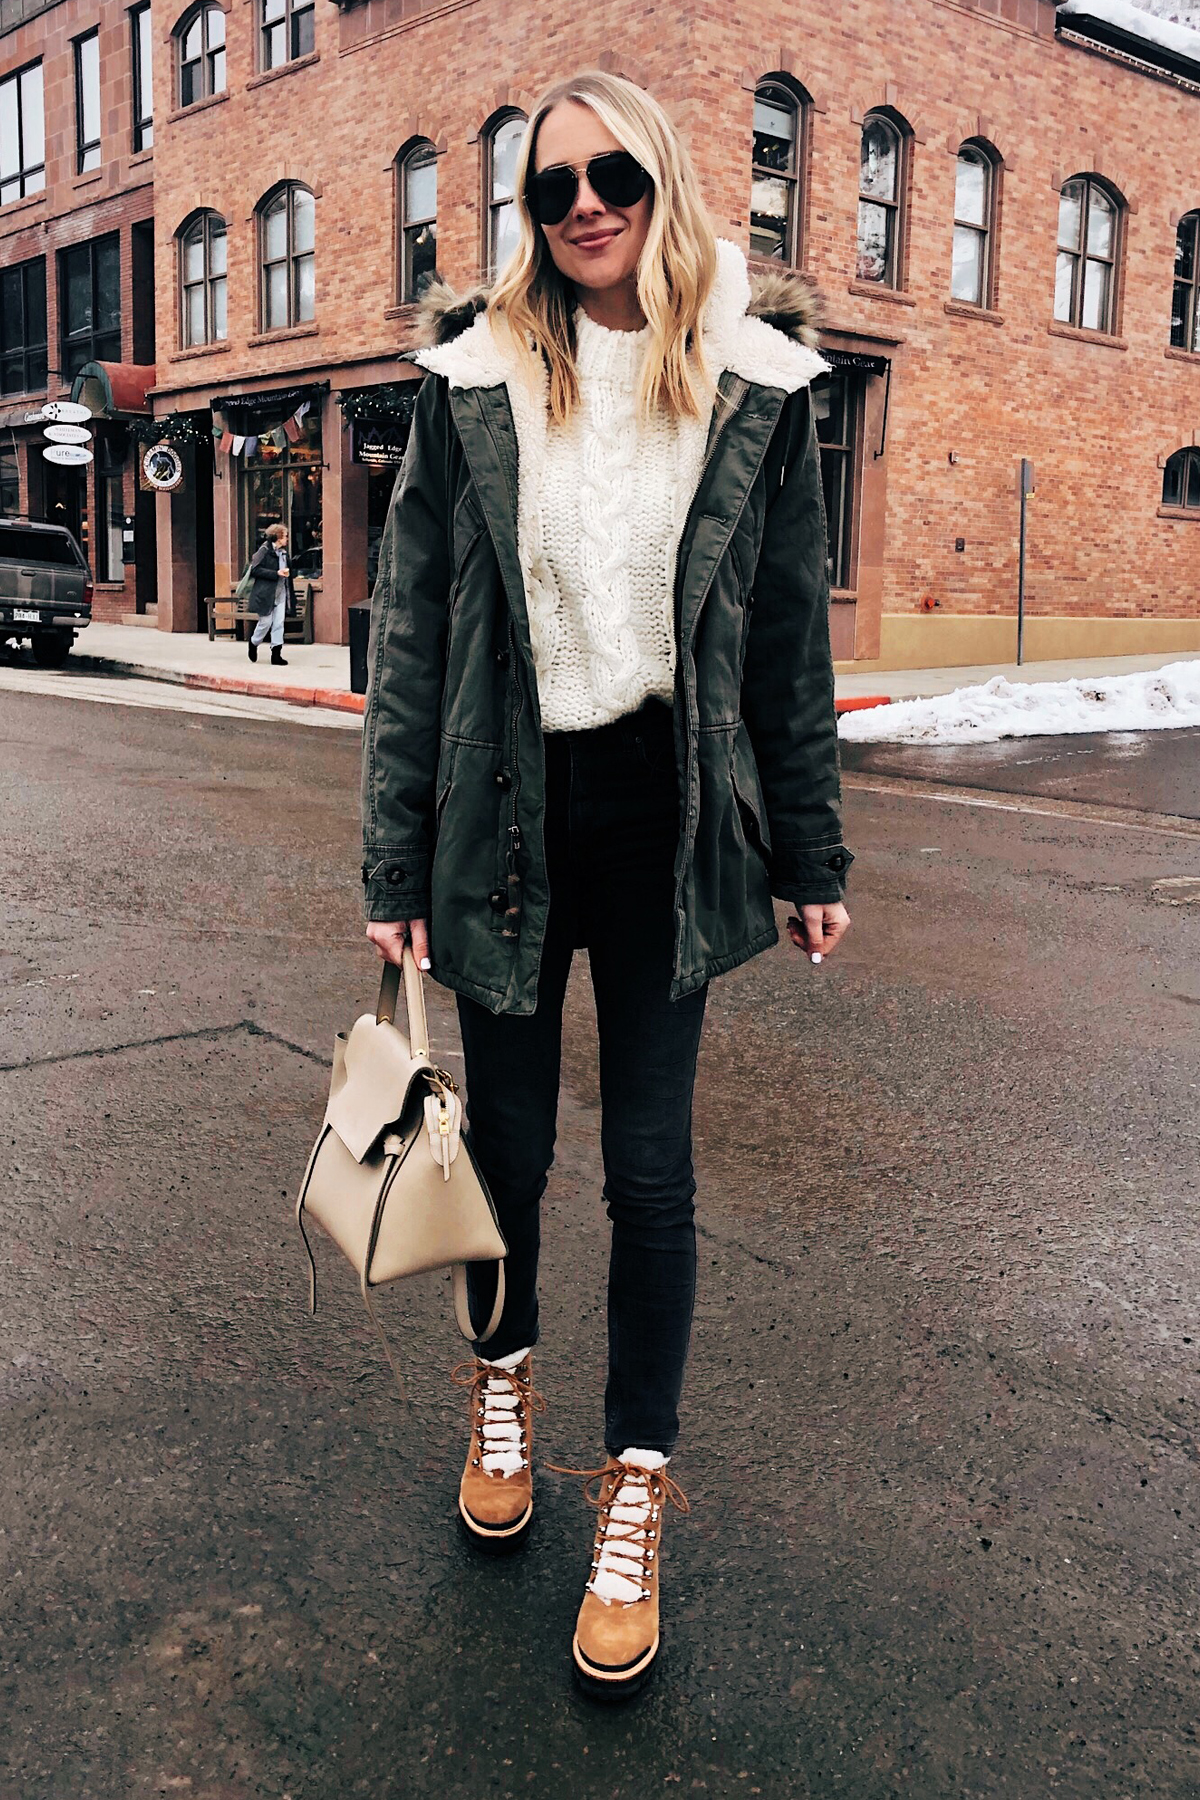 Fashion-Jackson-Wearing-Green-Parka-White-Knit-Sweater-Black-Jeans-Marc-Fisher-Winter-Boots